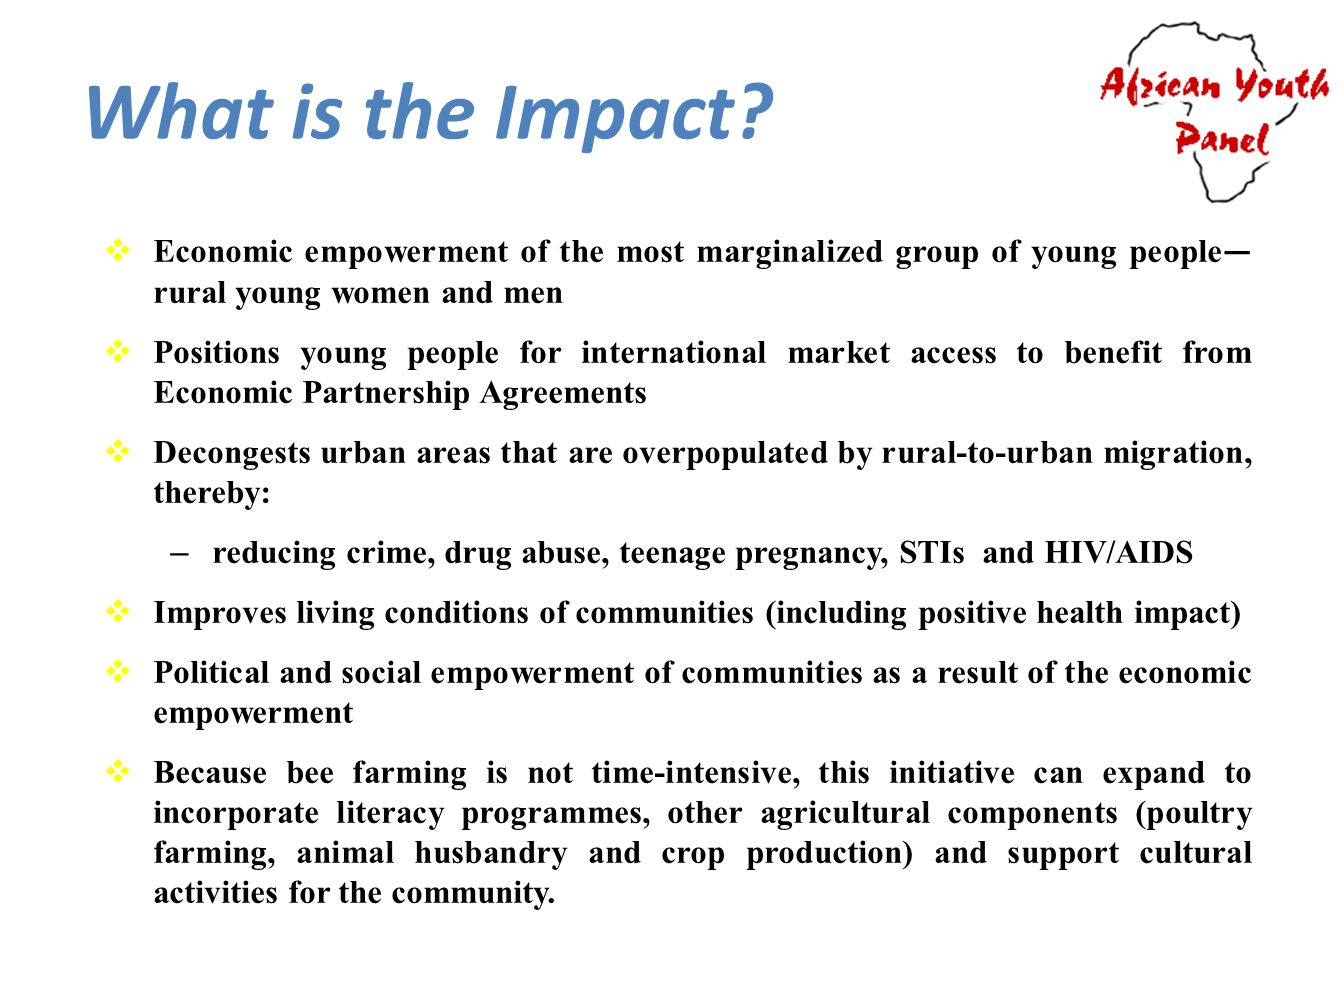 What is the Impact Economic empowerment of the most marginalized group of young people—rural young women and men.